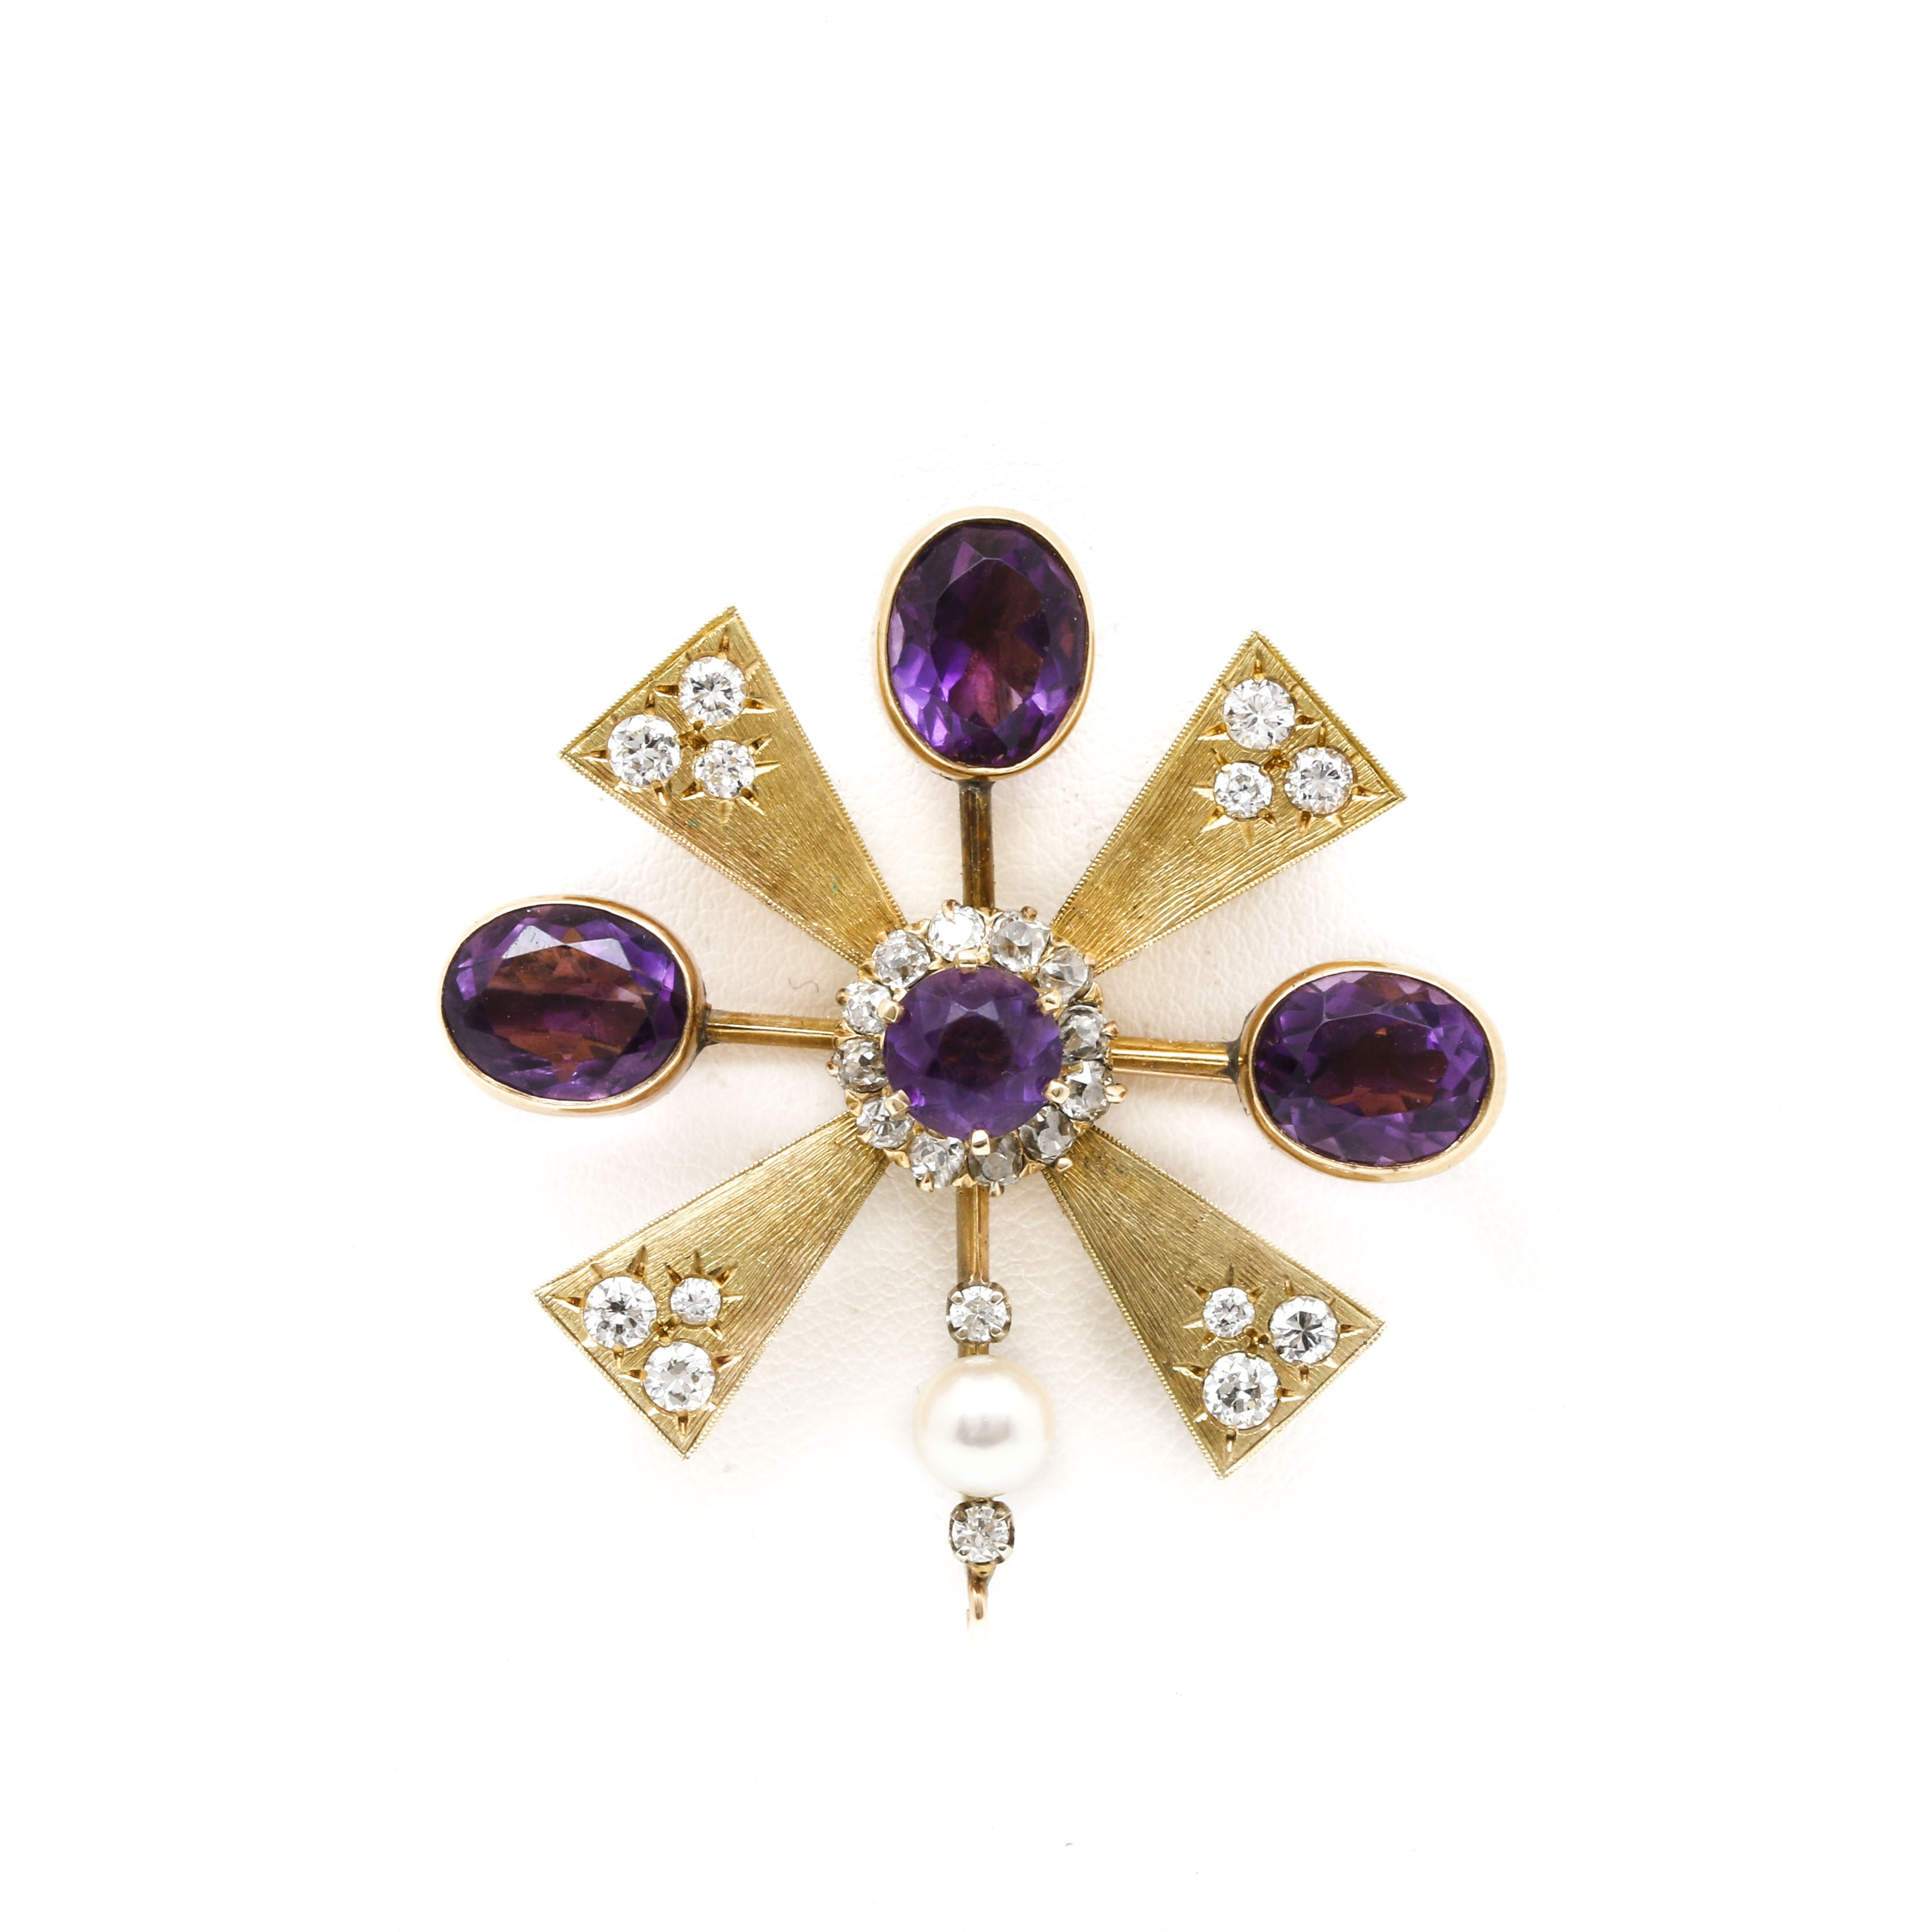 18K and 14K Yellow Gold Amethyst, 1.38 CTW Diamond and Cultured Pearl Brooch